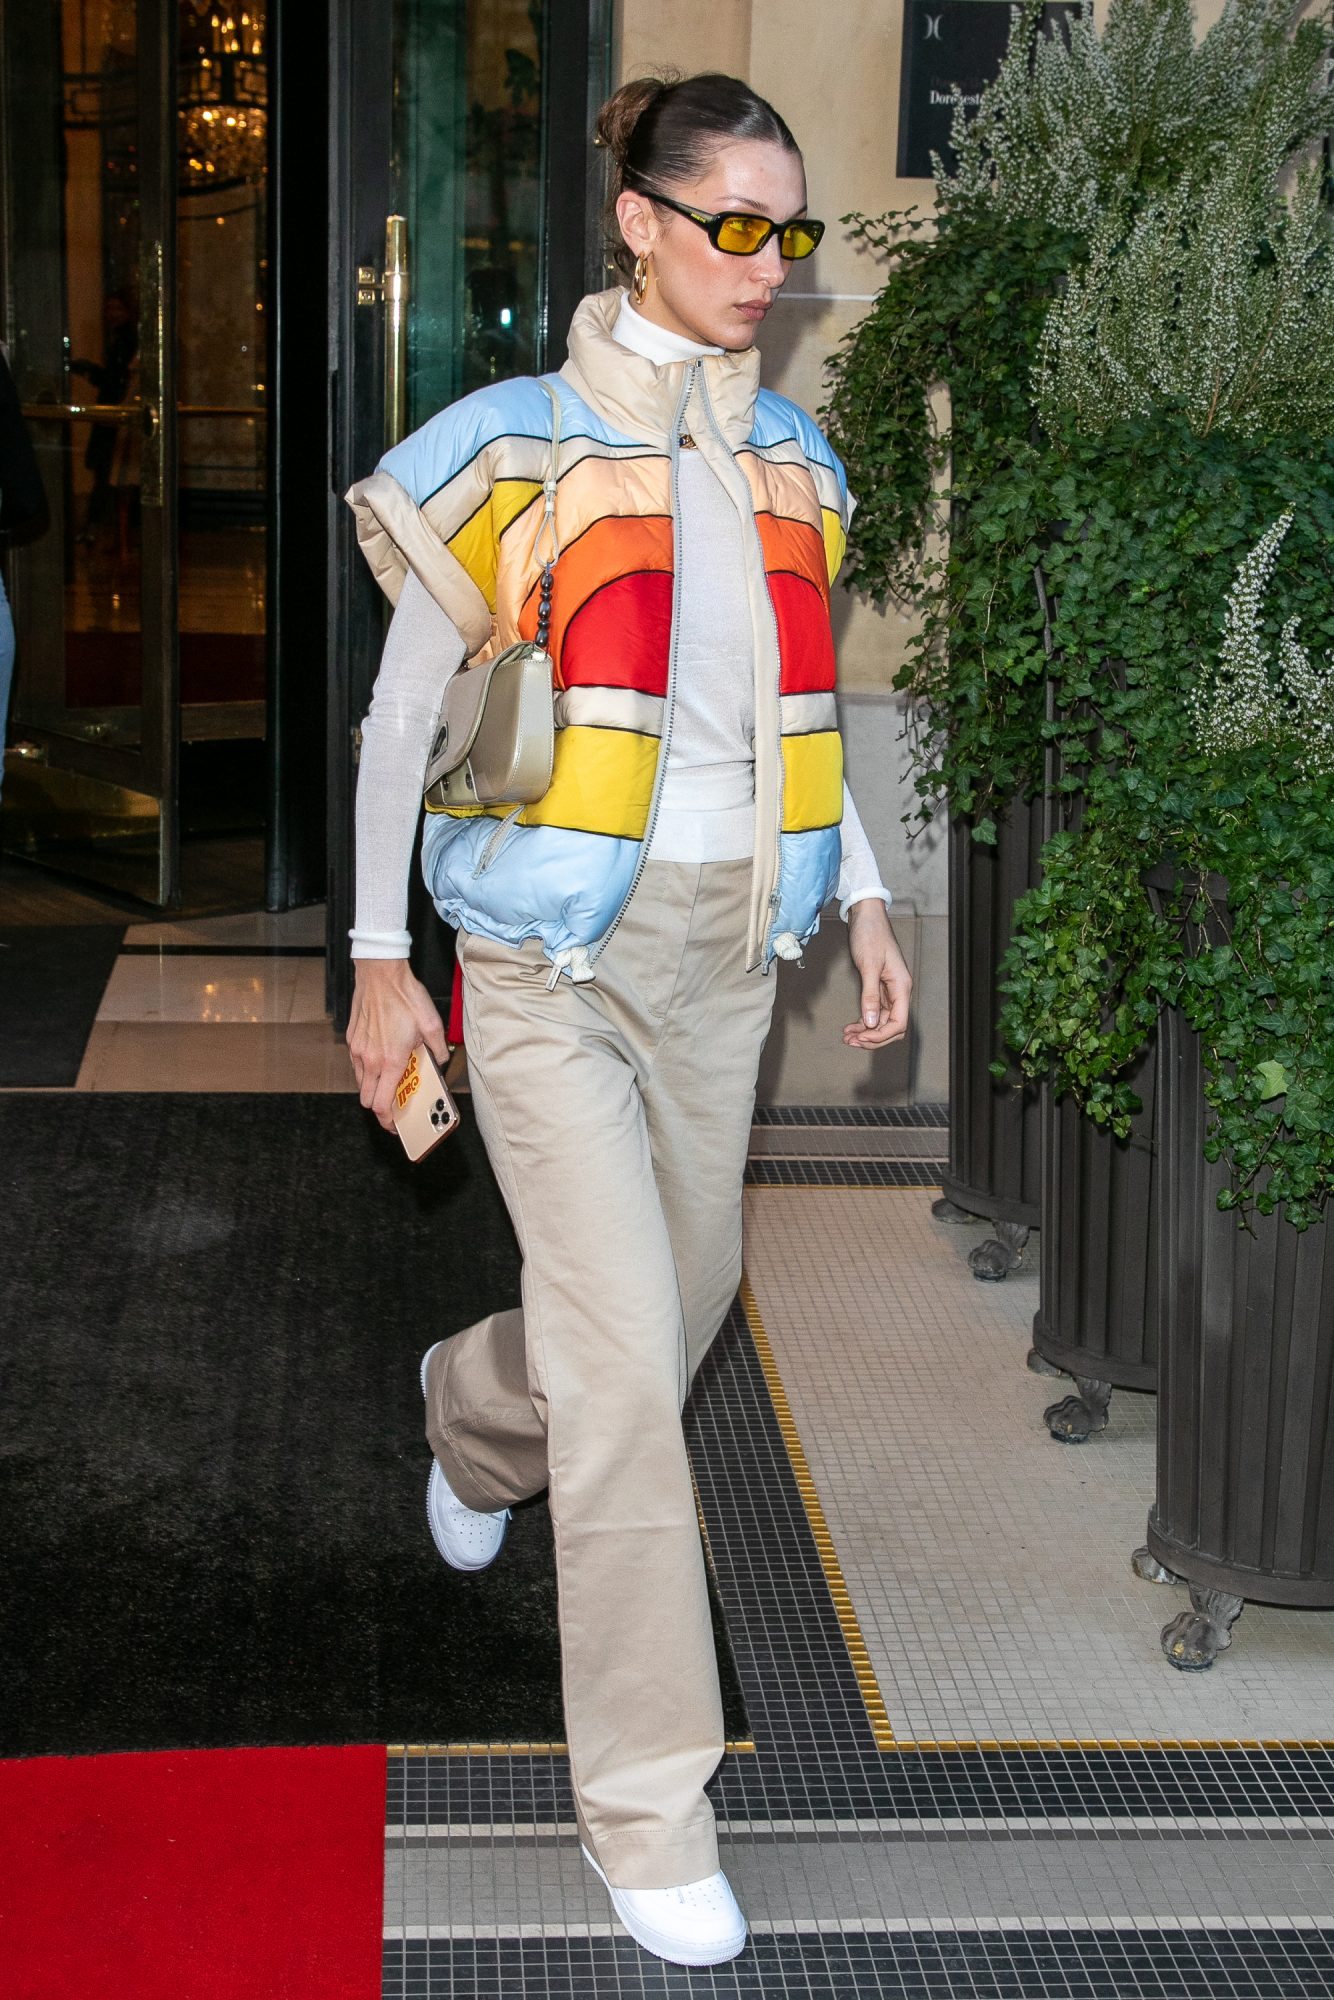 '90s Dad Fashion Trend, Bella Hadid Wearing Khakis and a Vest